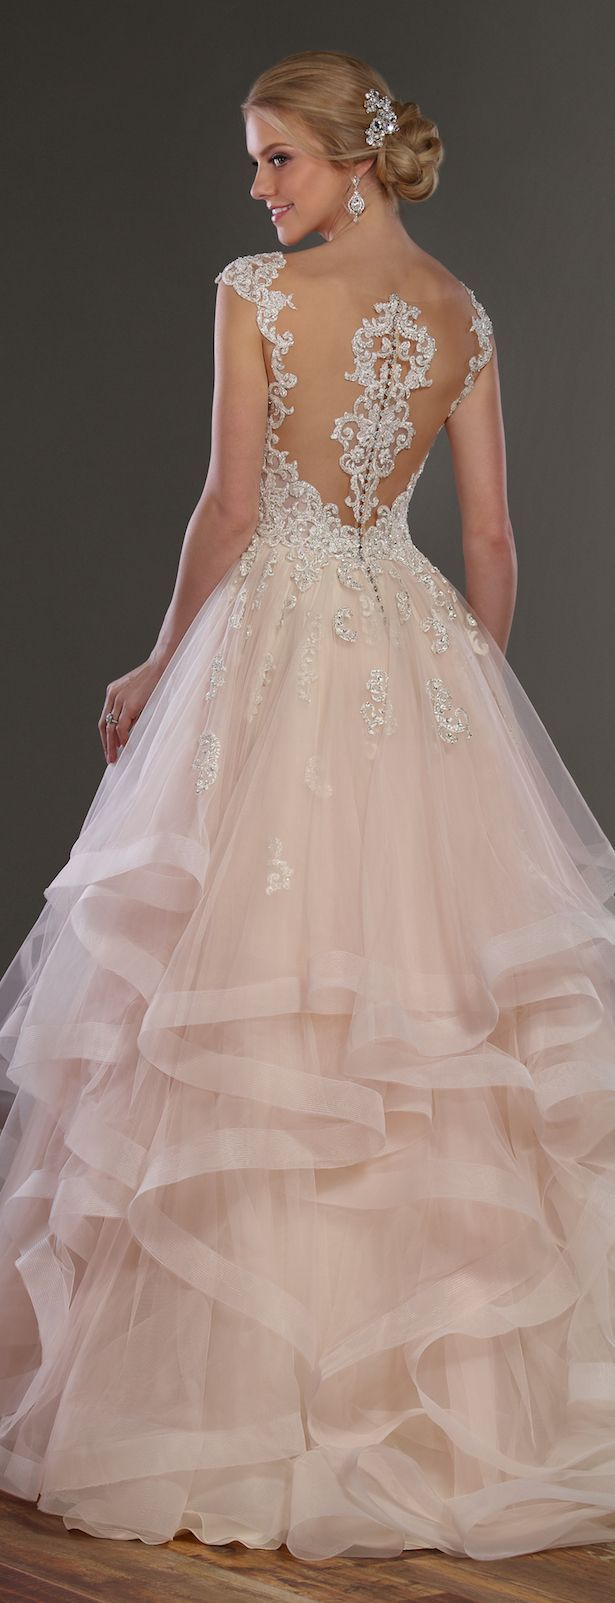 Wedding Gowns With Designs : Best ideas about dress designs on